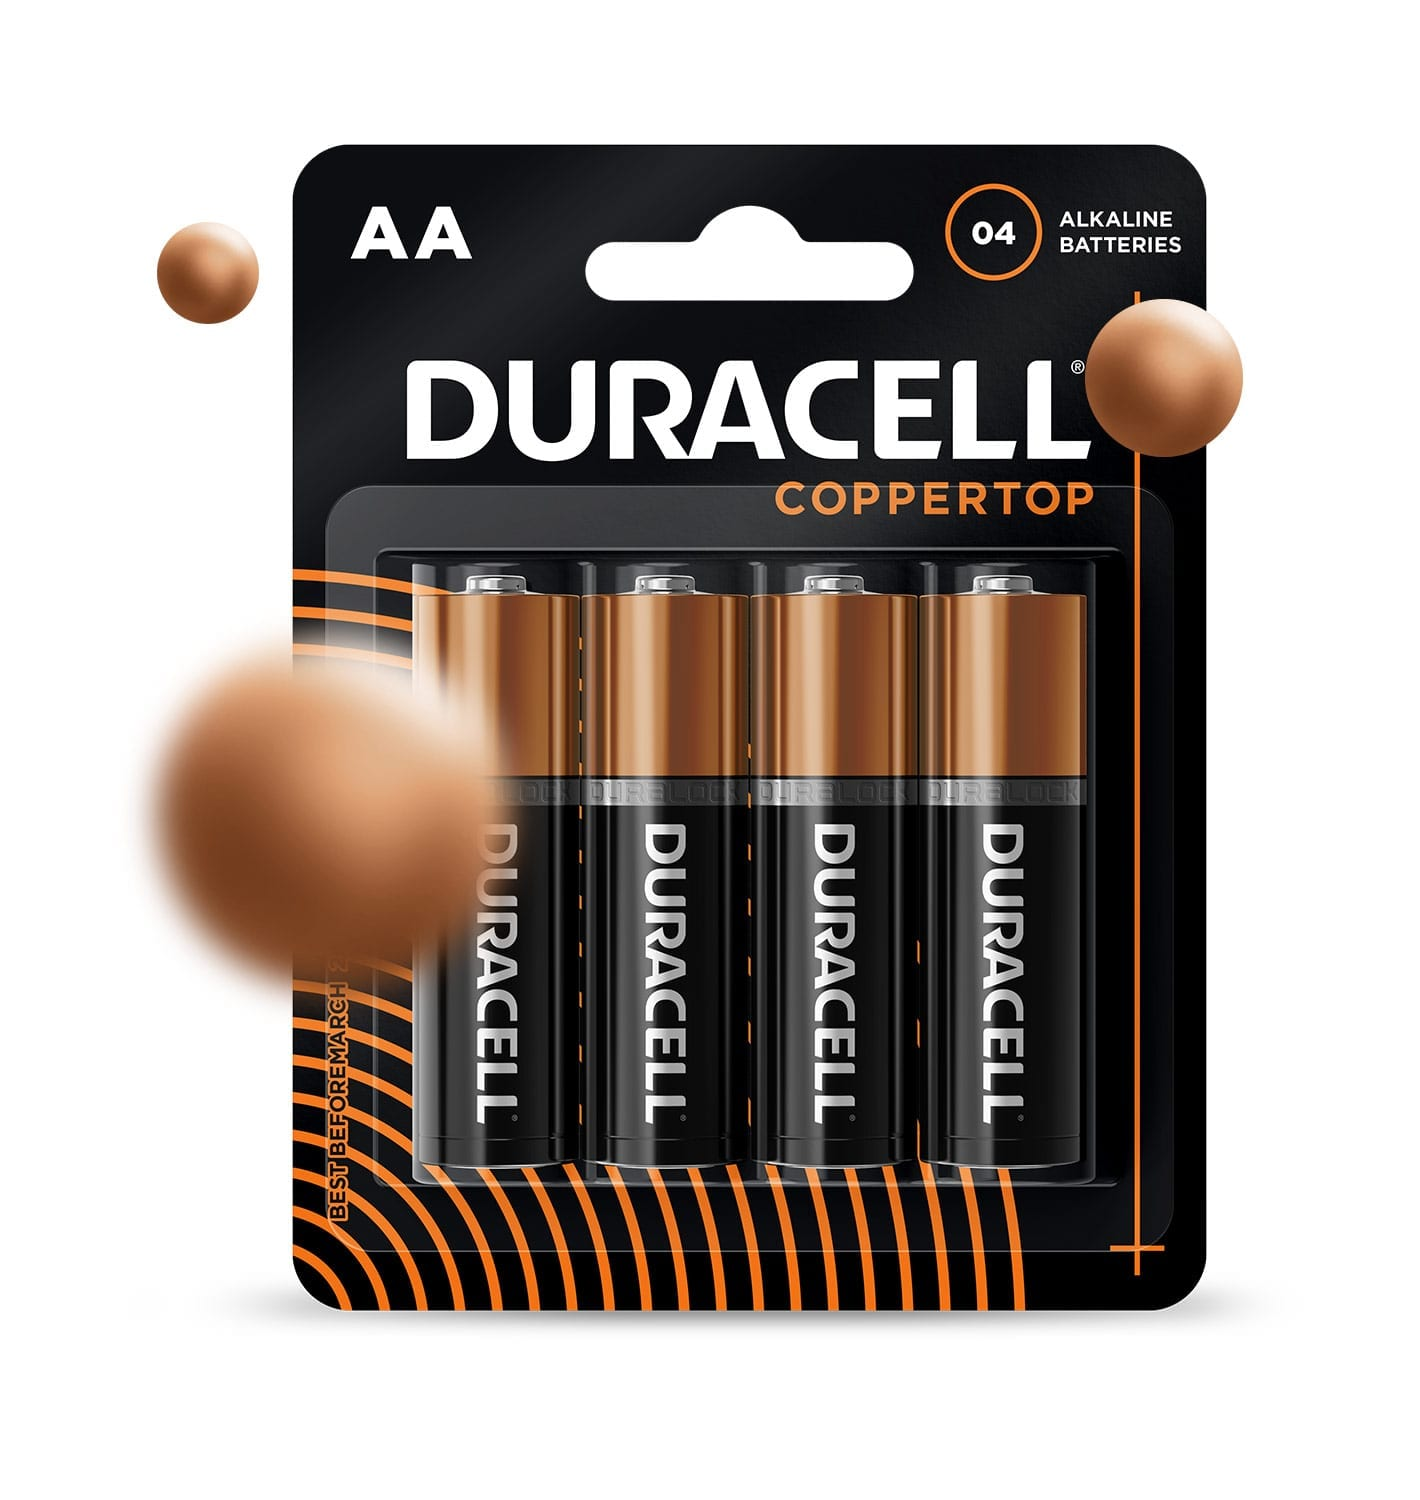 Duracell package design company